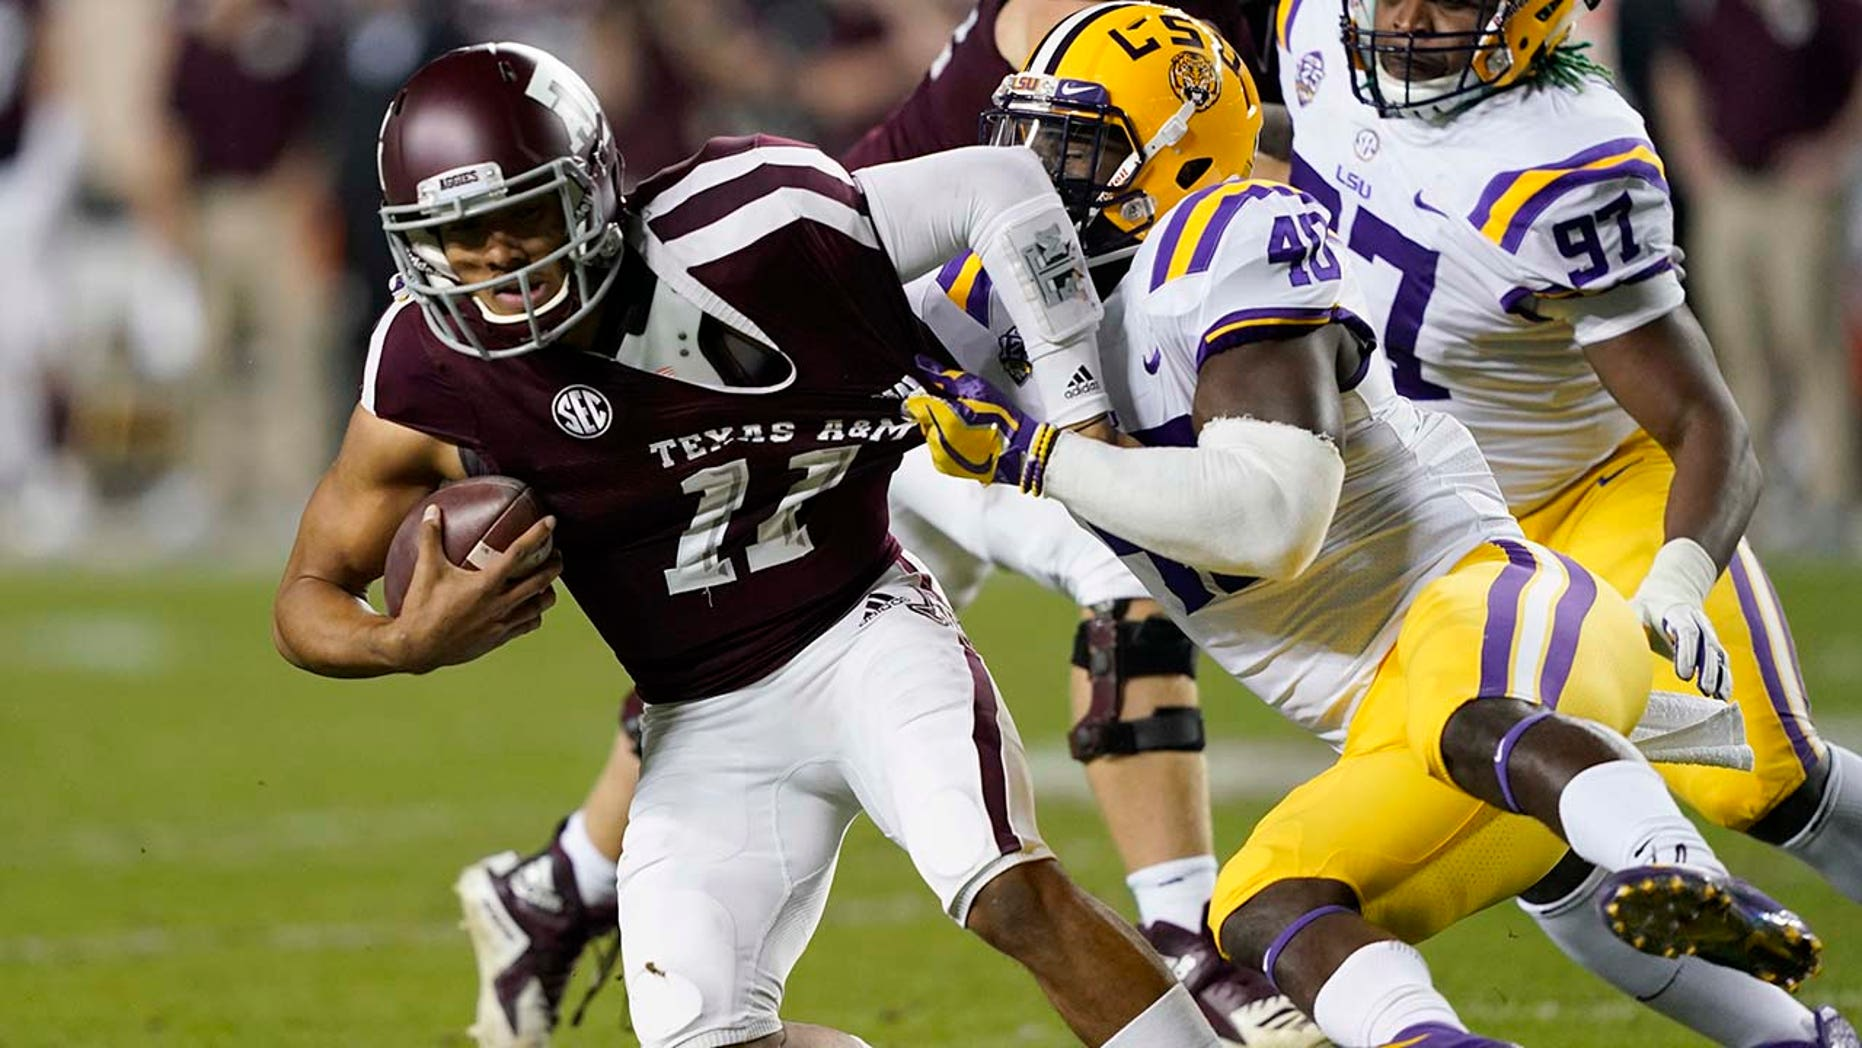 Texas A&M, LSU play 7 overtimes until Aggies win, 74-72 ...